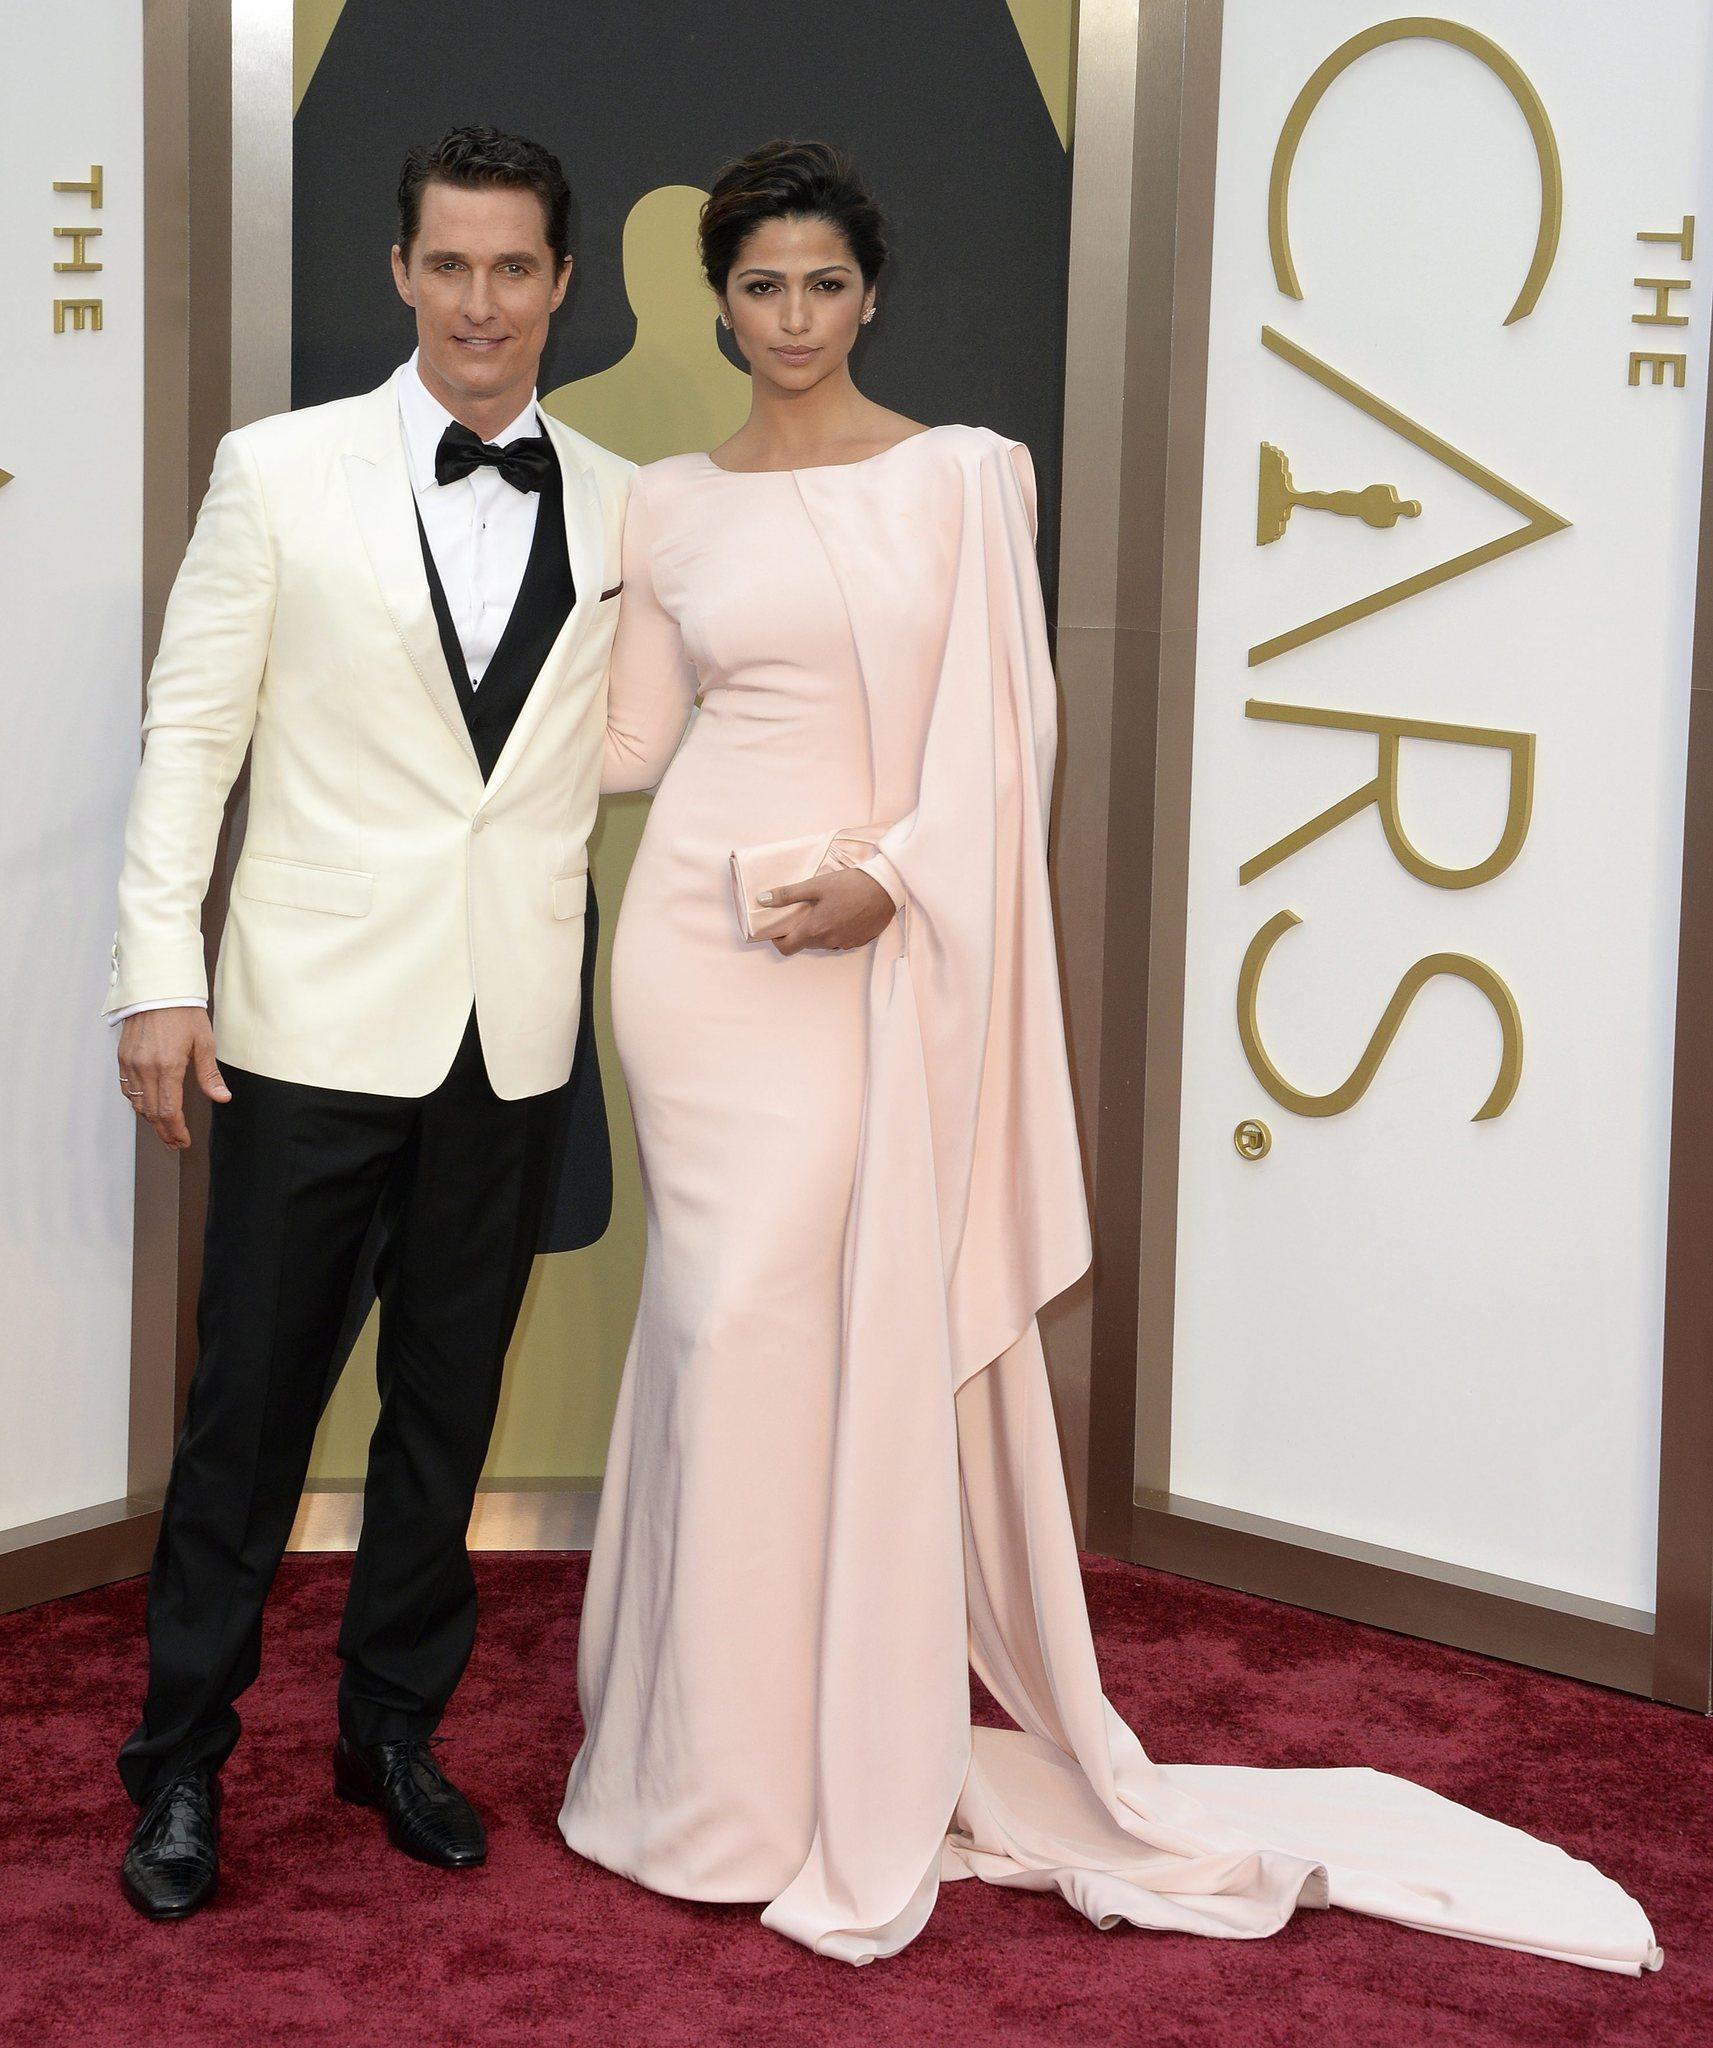 Matthew McConaughey and Camila Alves-McConaughey arrive for the Academy Awards ceremony.